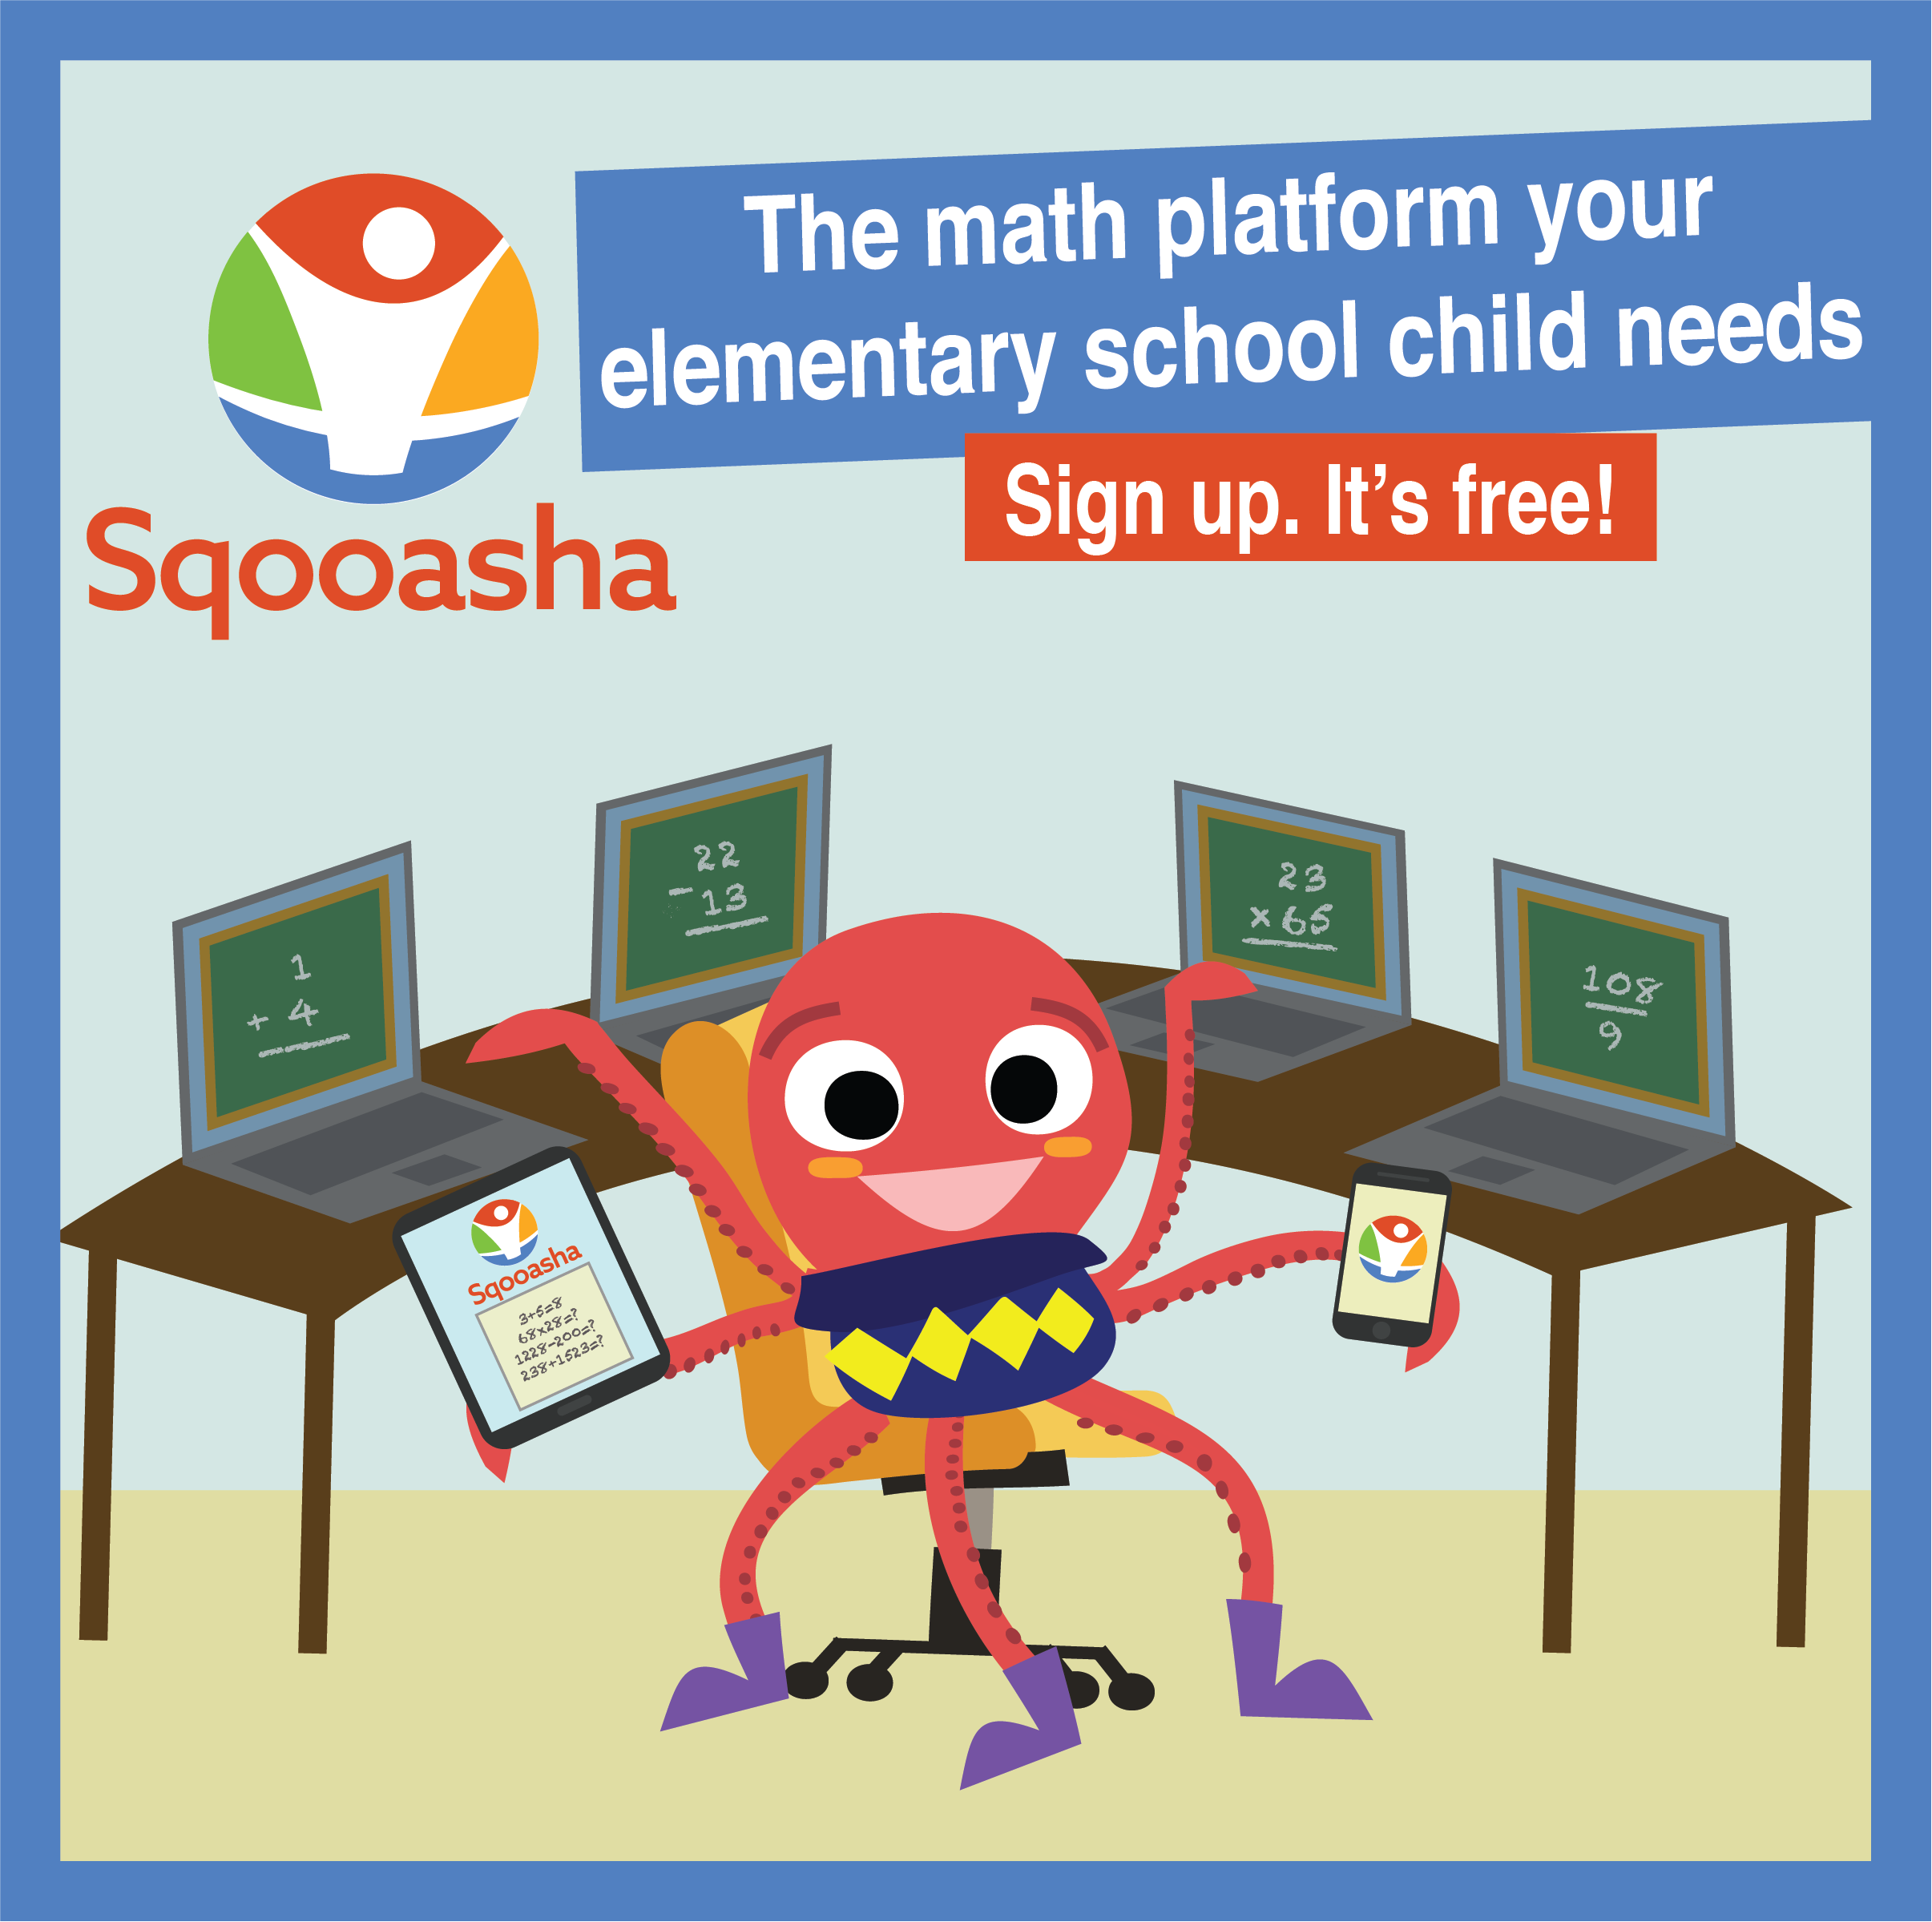 Free Elementary Math App For Friendly Competitions With